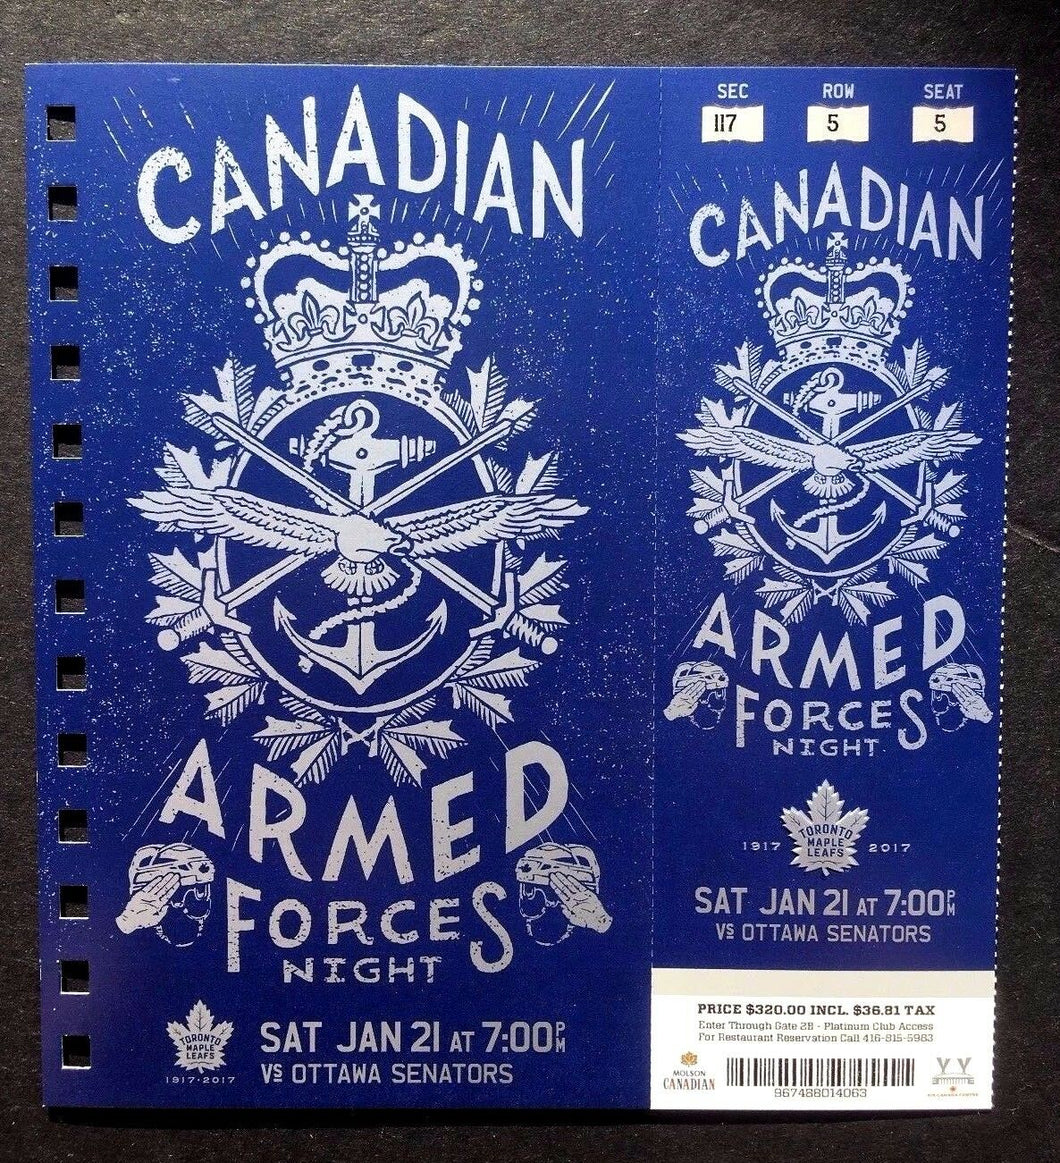 2016-17 Maple Leafs vs Ottawa Senators Armed Forces Night Featured Ticket